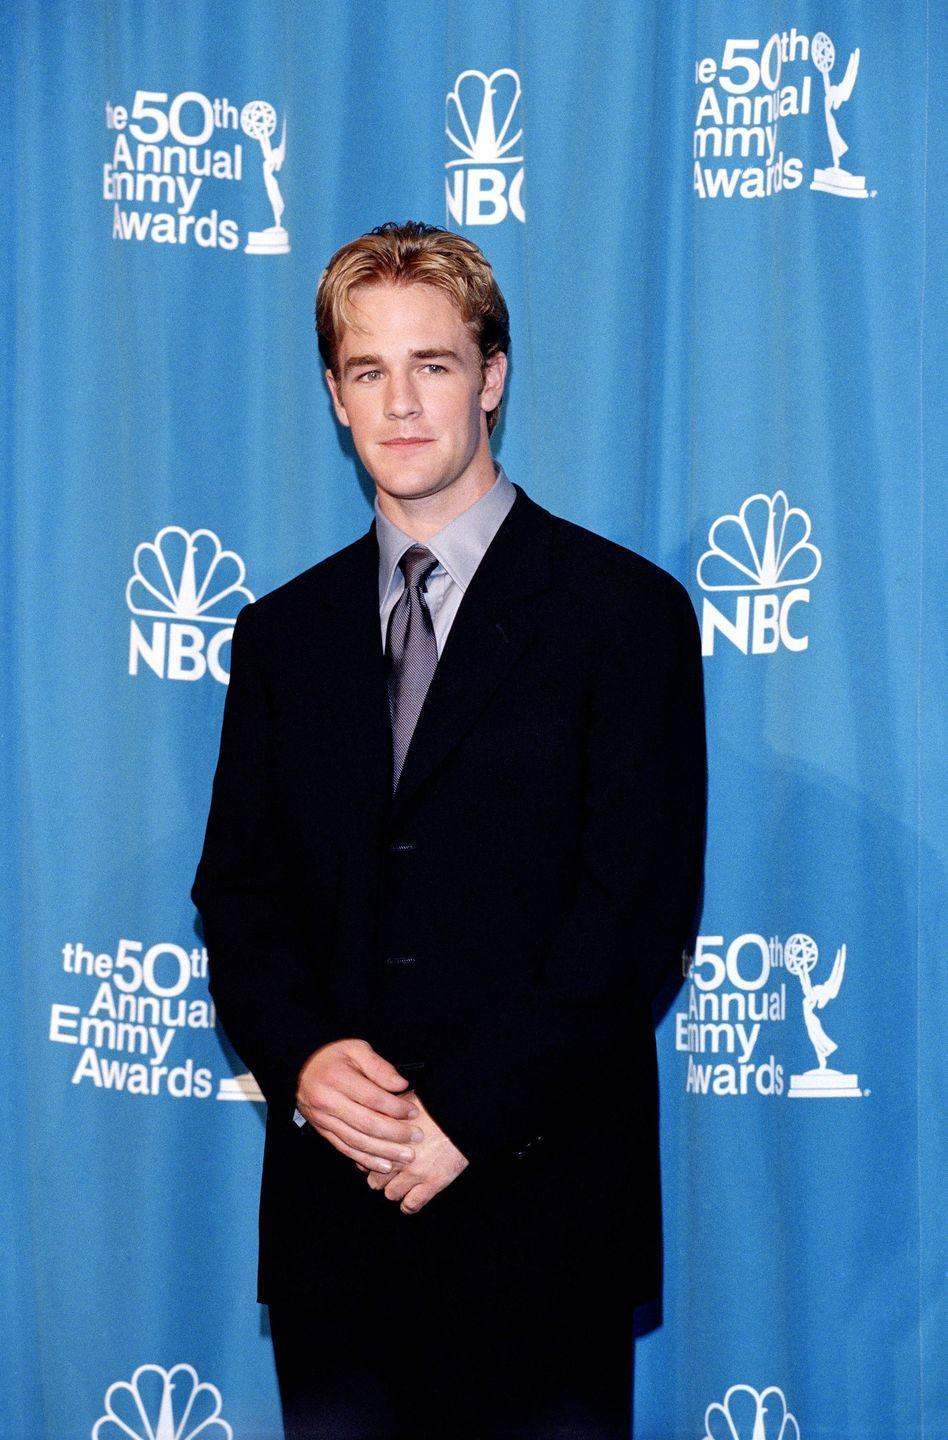 <p>As you're probably well aware, James played Dawson on <em>Dawson's Creek—</em>as in, *the* teen drama series from the '90s. So you can bet that many a teenage girl had posters of his face all over their bedroom walls. </p>